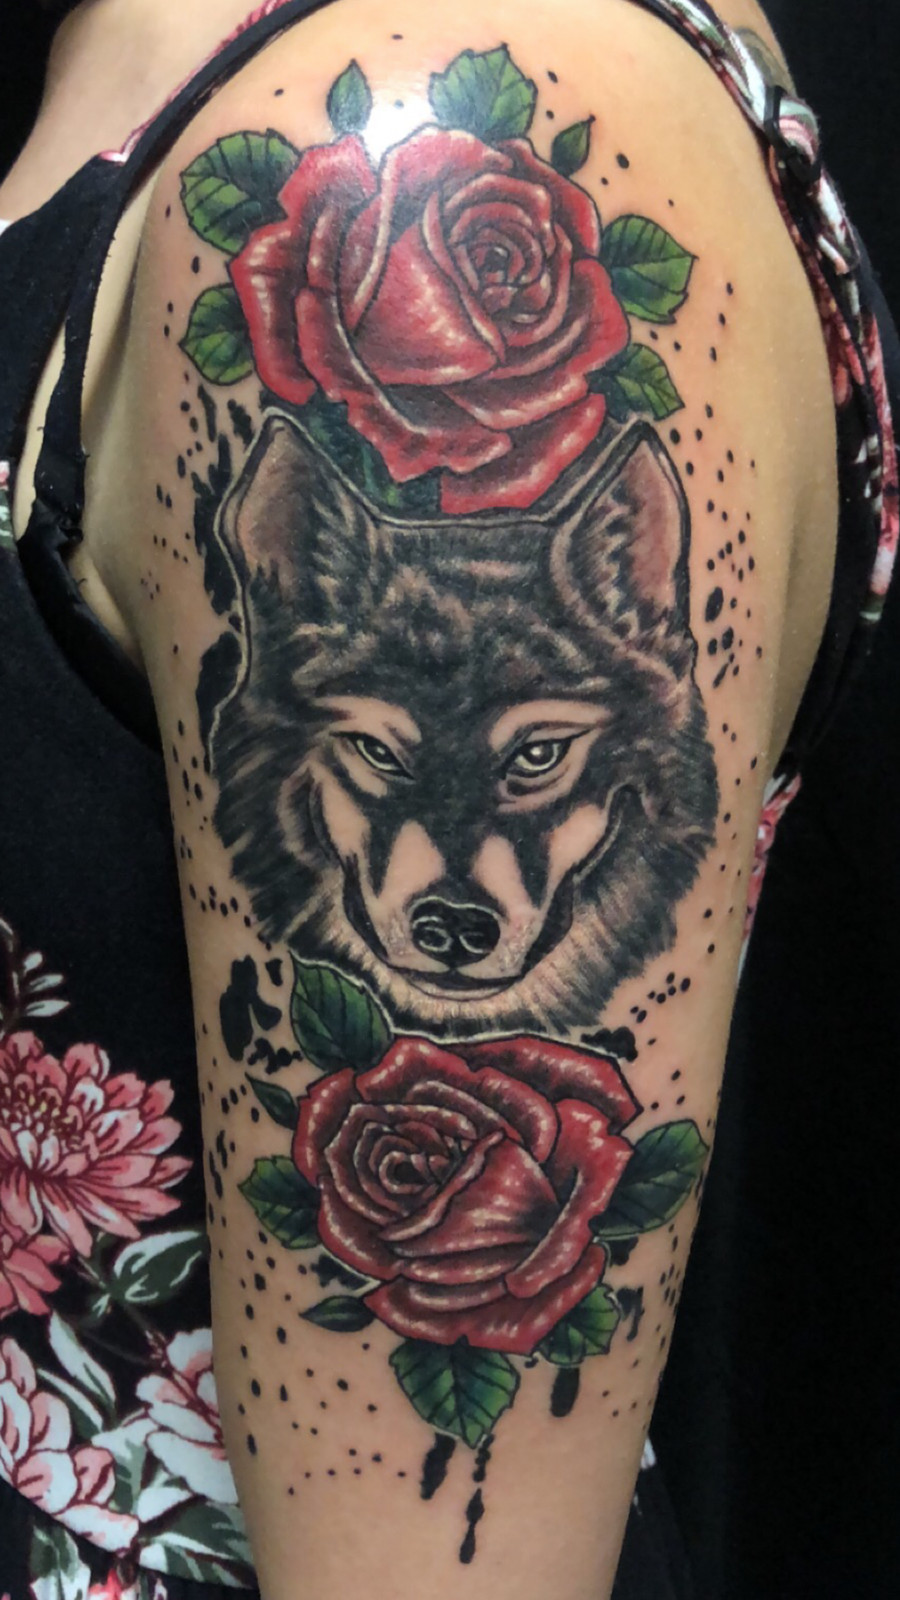 Rose Wolf Roses Tattoo Frankie Bonze House Of Pain